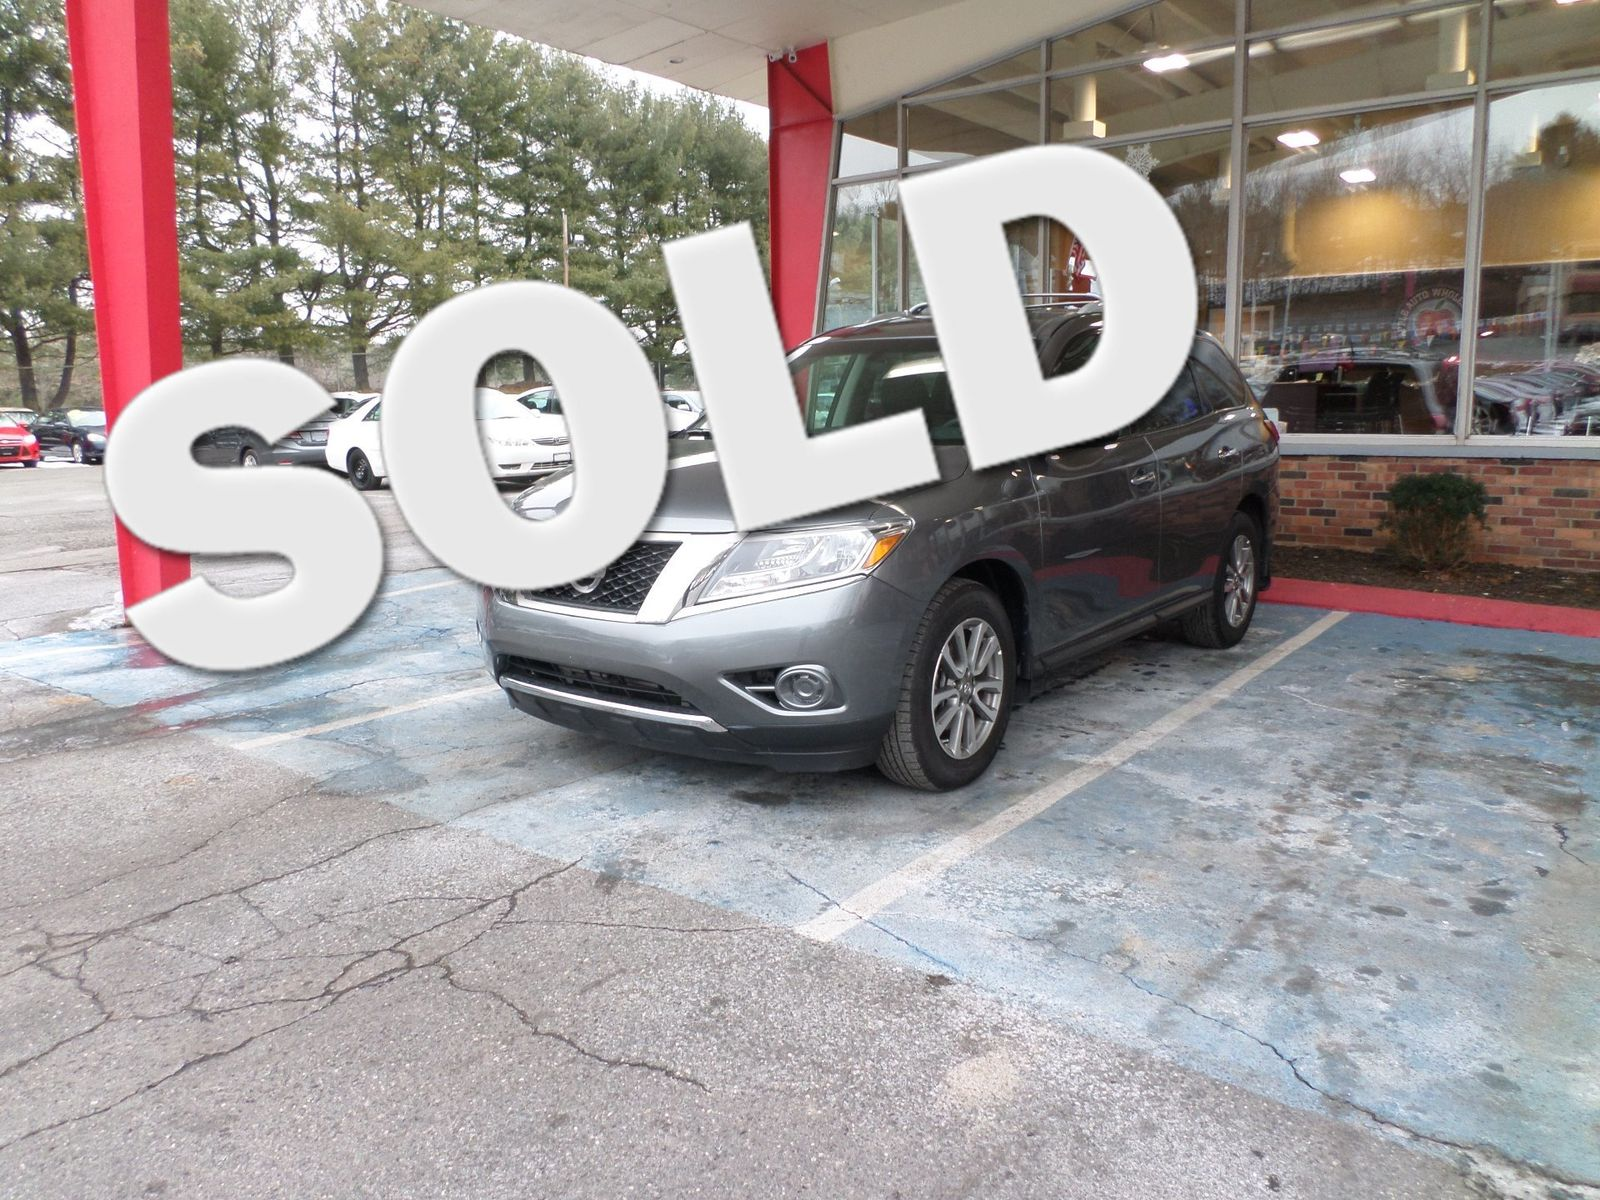 vehicles nissan cars sl in on used buysellsearch gasoline ml for pathfinder sale mk iowa